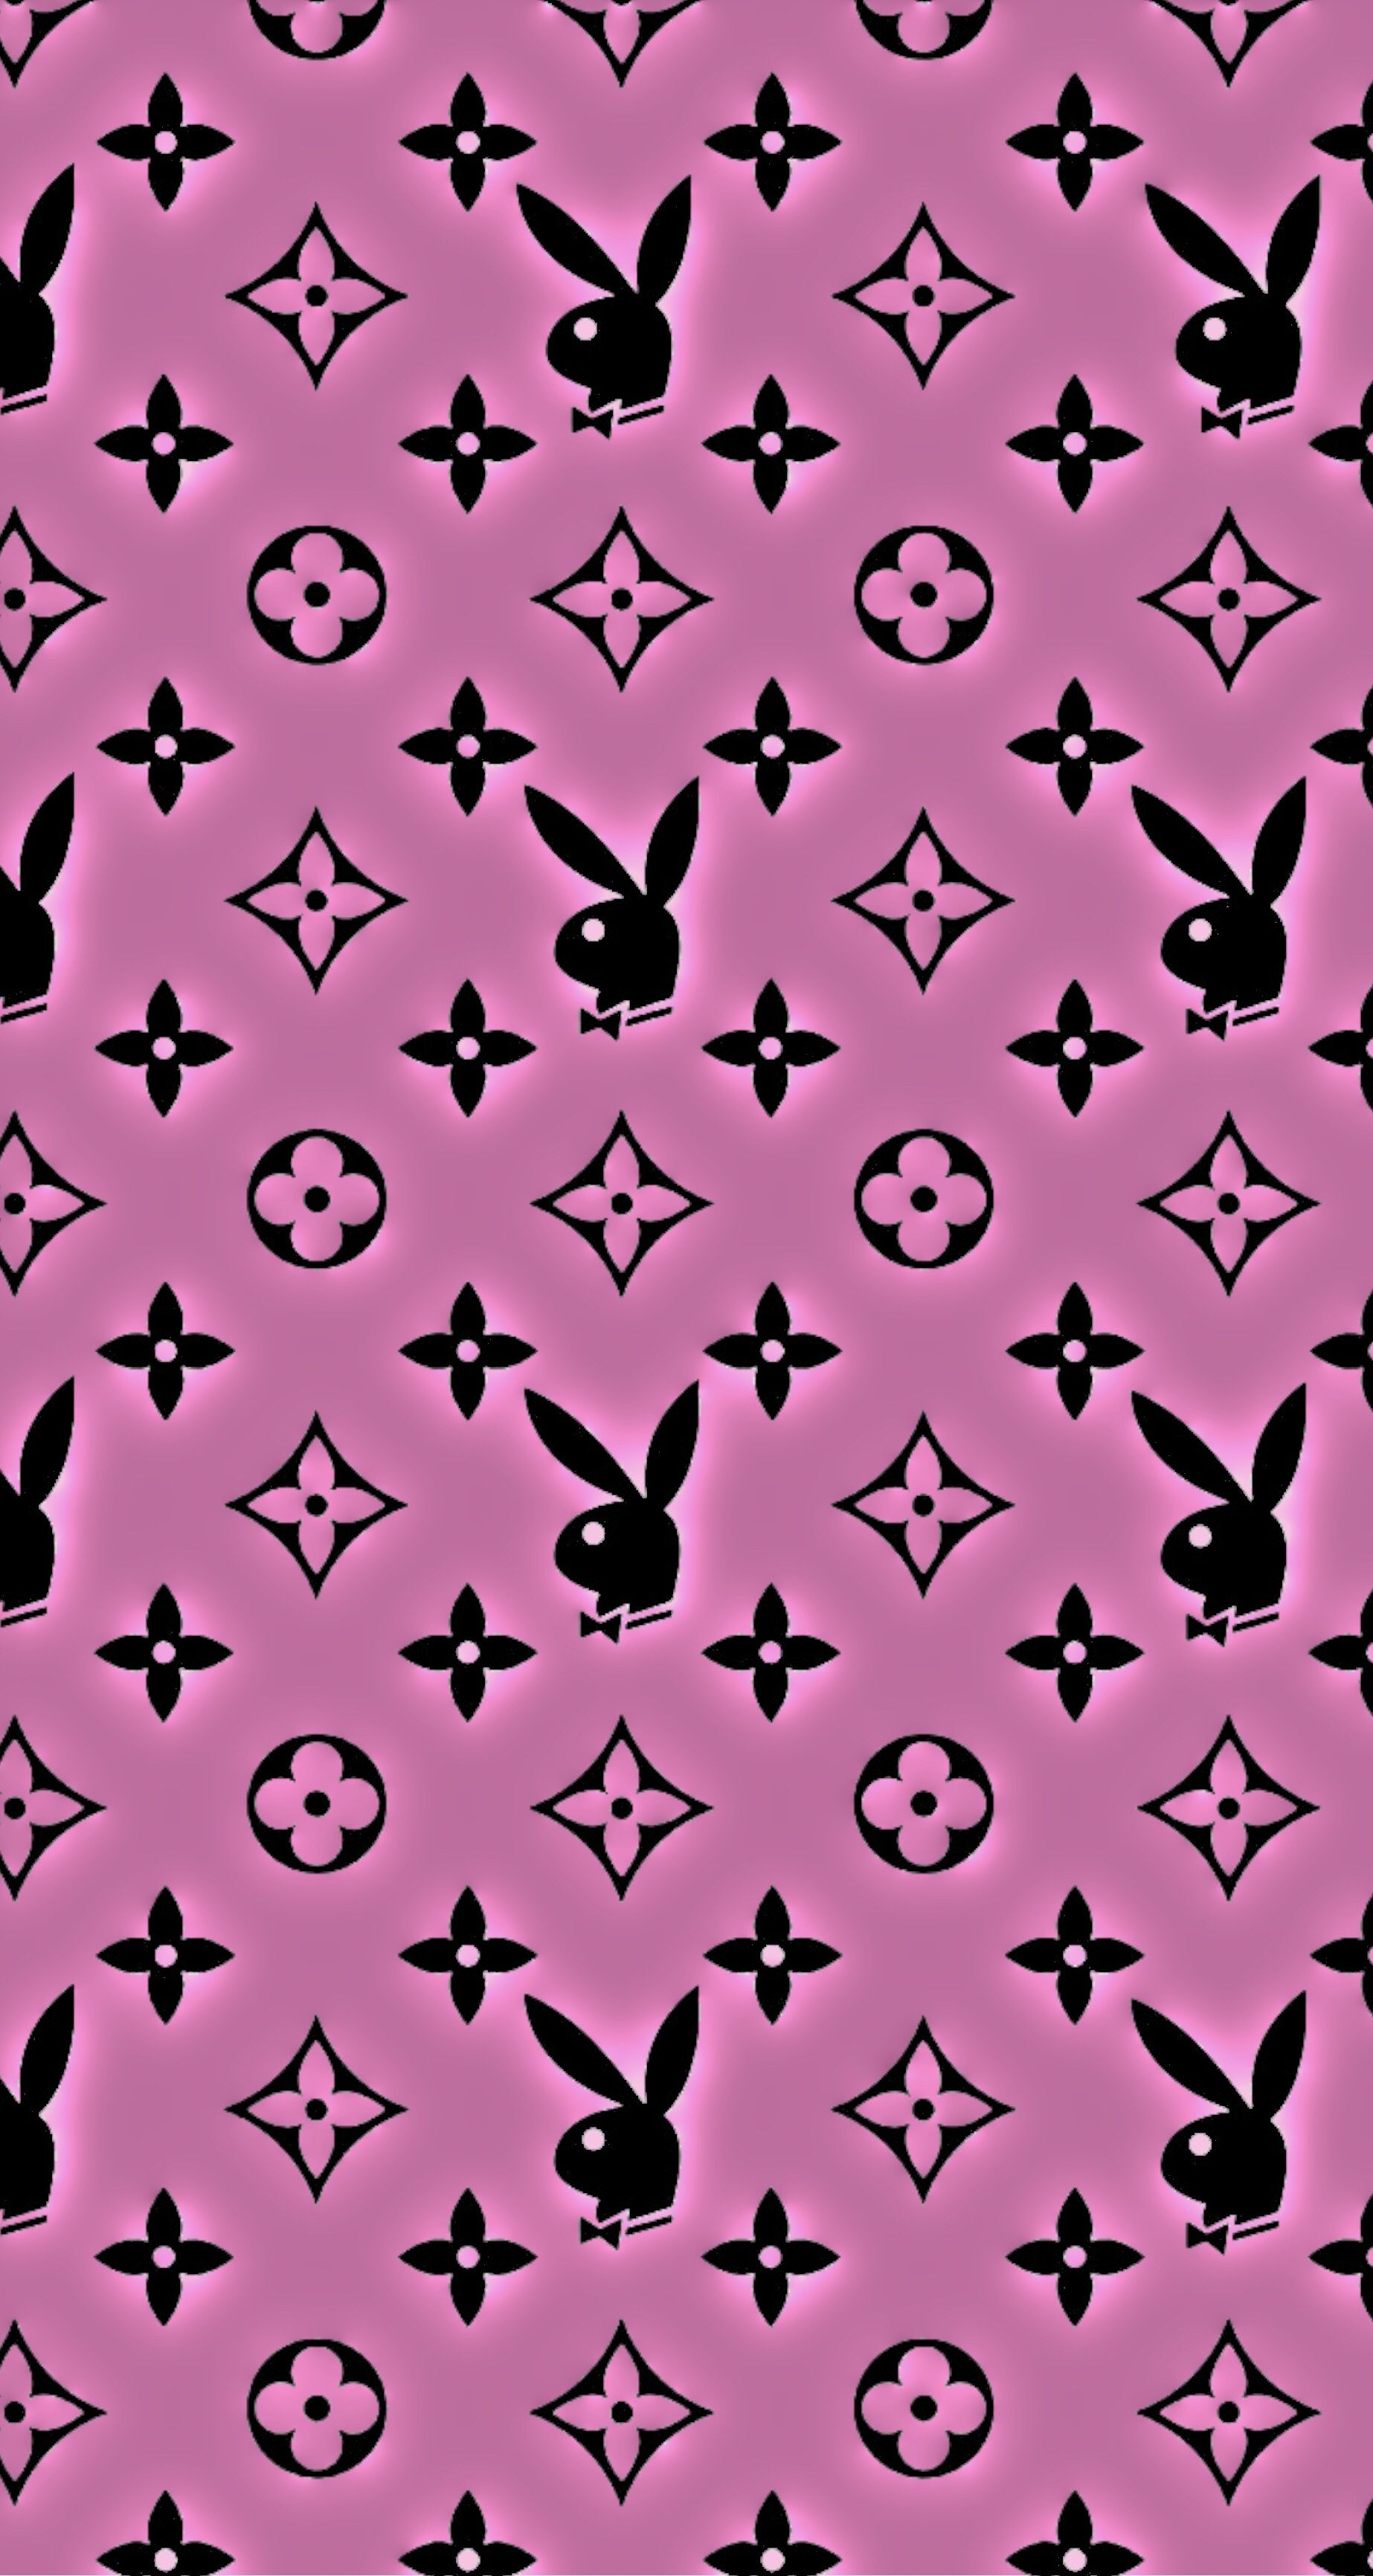 Louis Vuitton Wallpaper By Me Hehe In 2020 Iphone Wallpaper Girly Aesthetic Iphone Wallpaper Pink Wallpaper Iphone